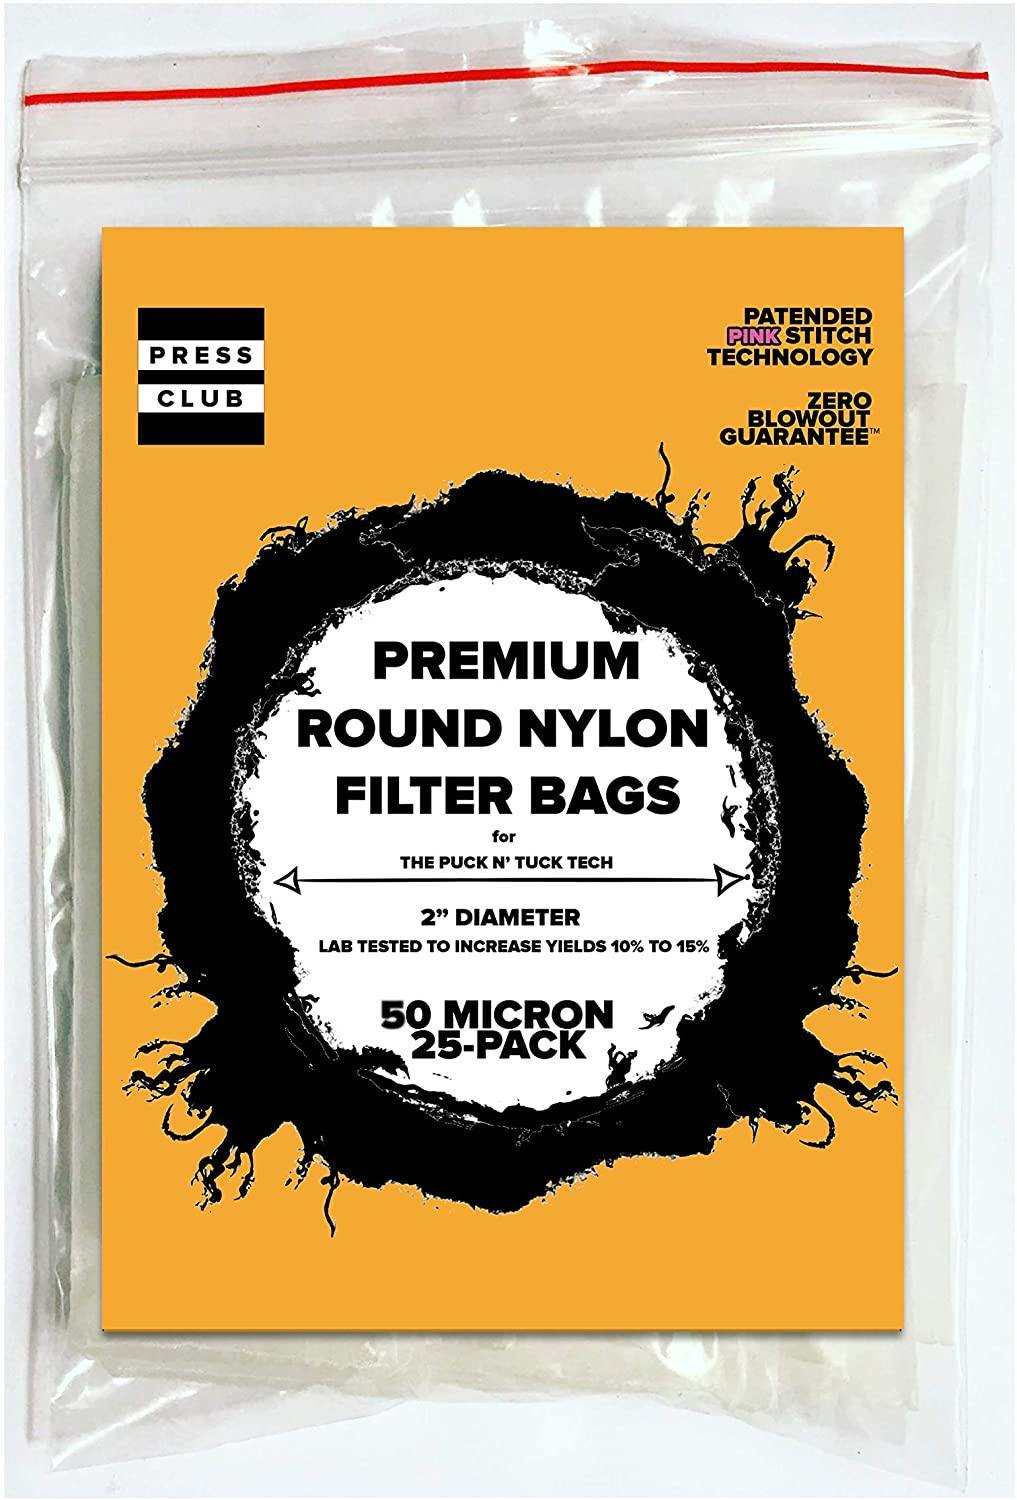 LIMITED-EDITION: ROUND ROSIN BAGS - The Press Club